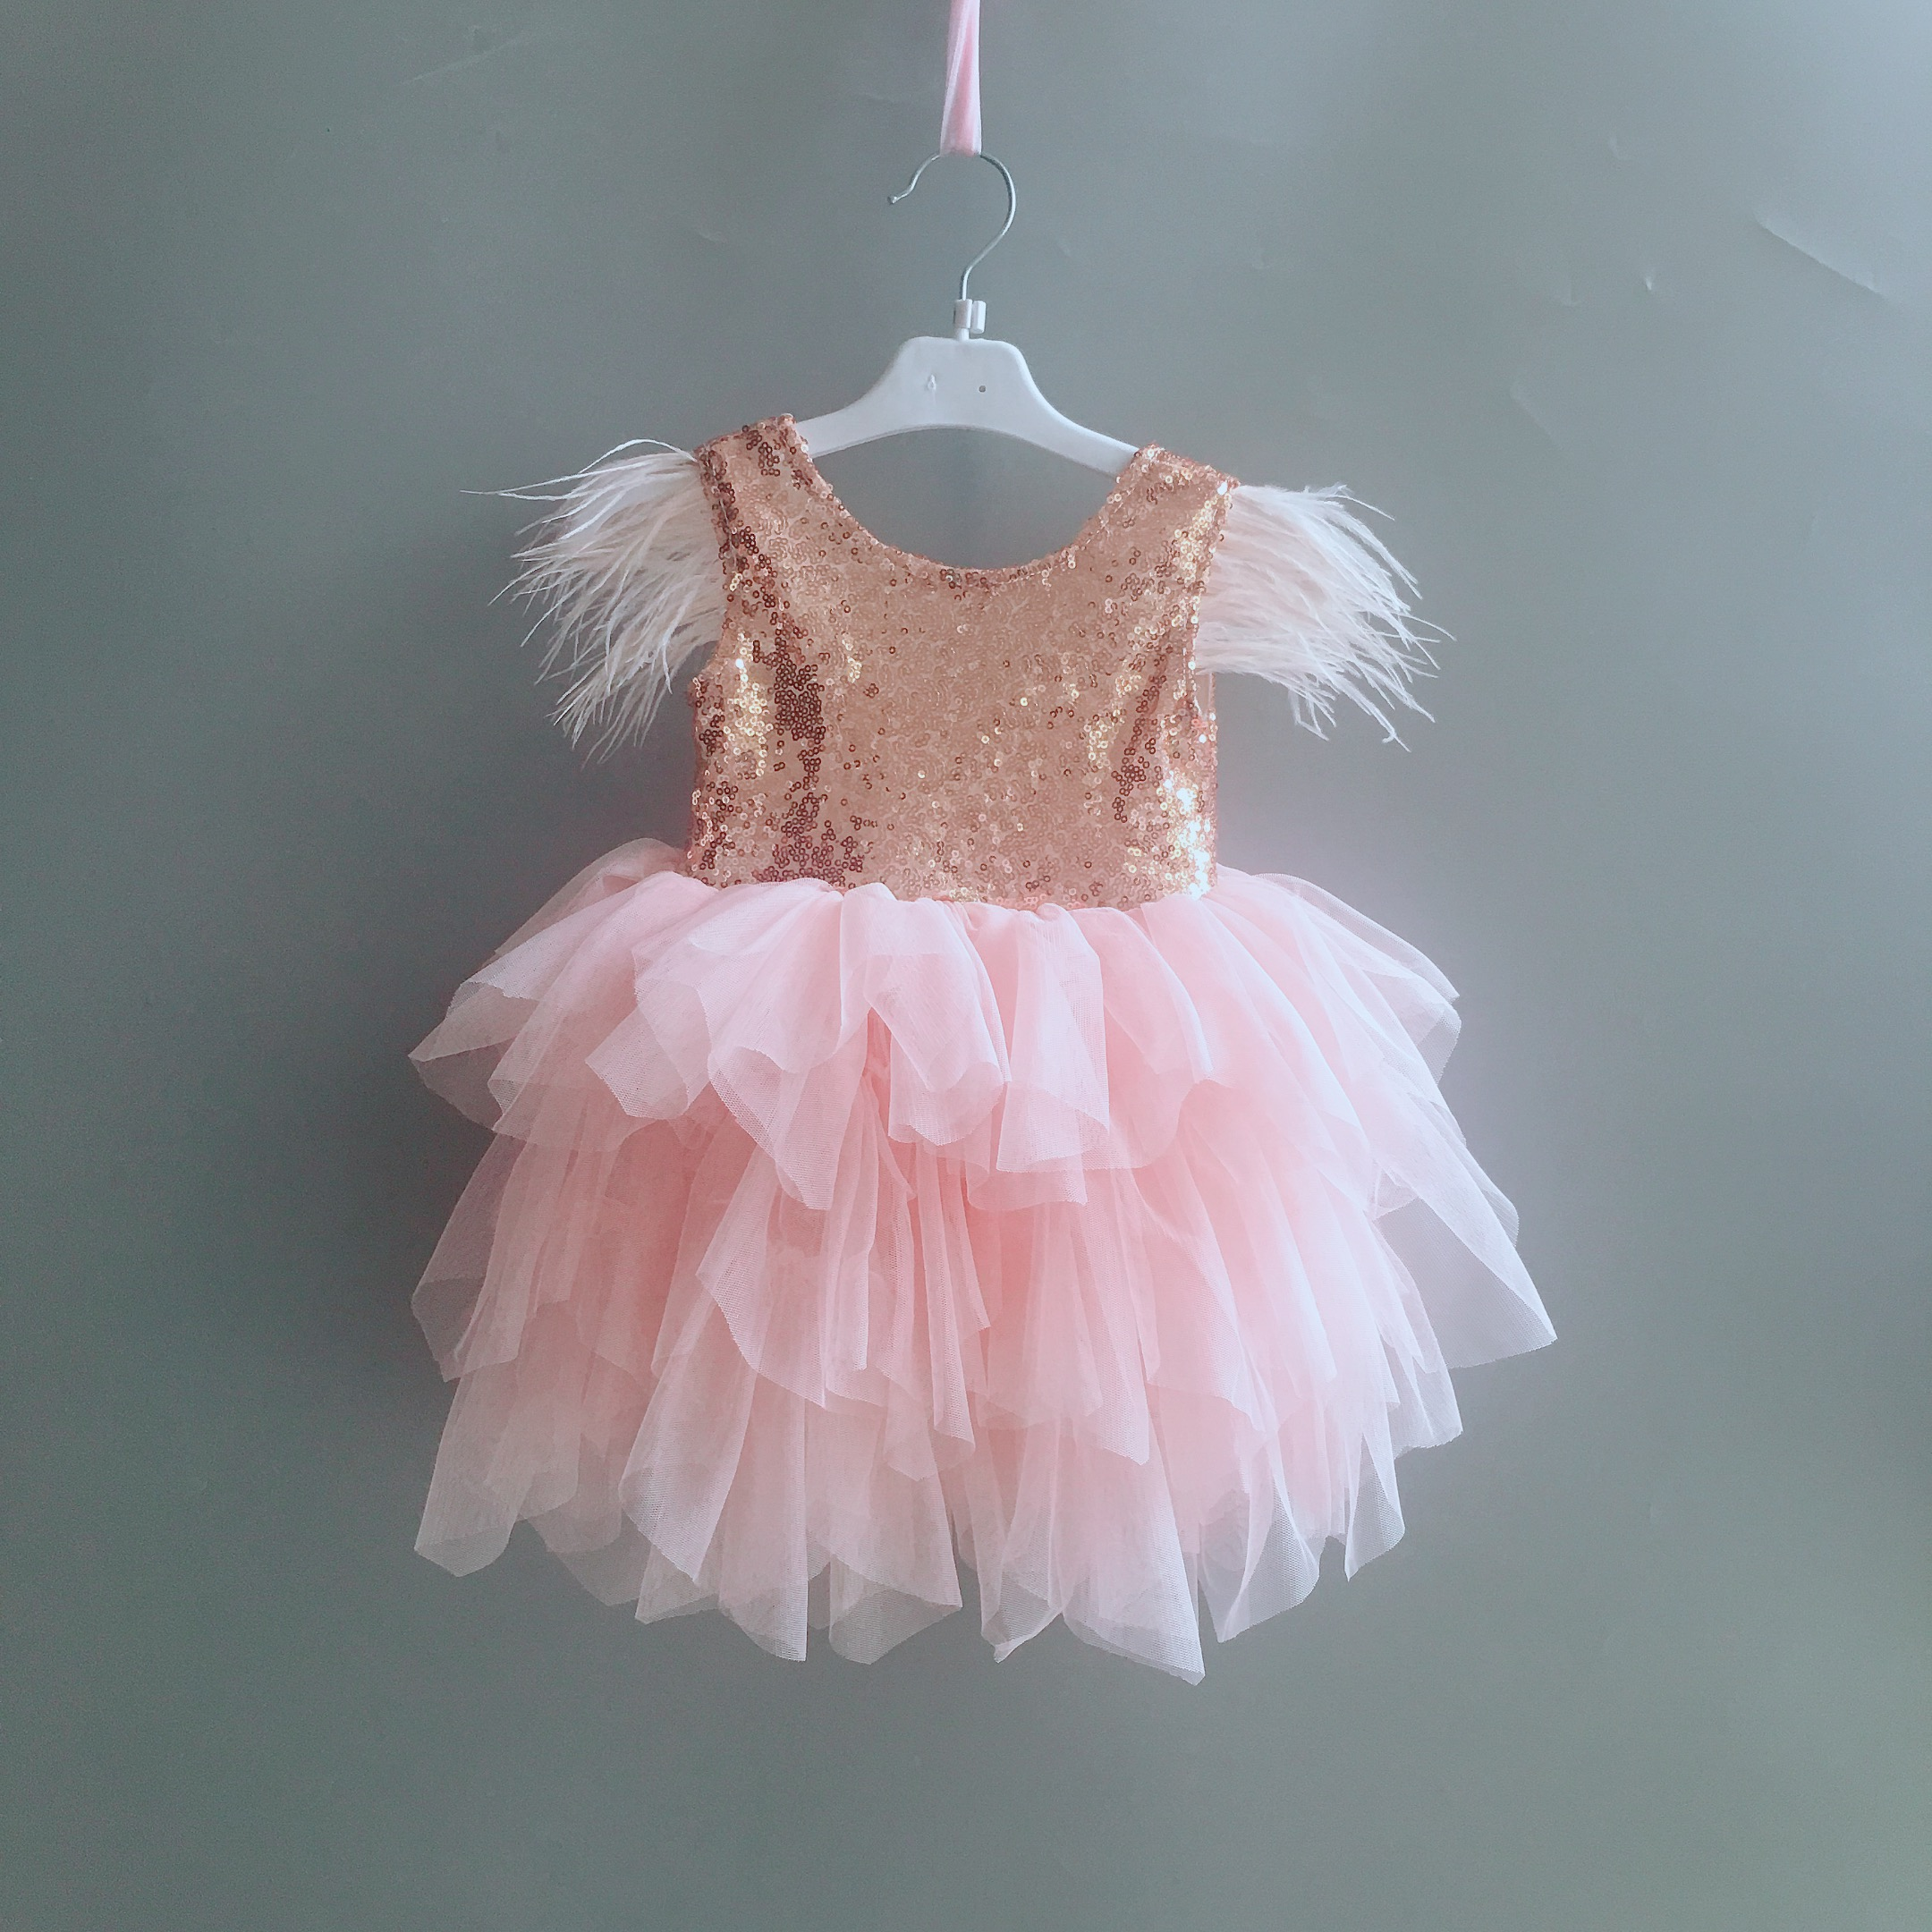 Princess baby feather dress 1st birthday party toddler girls lace flying sleeve summer dress kids tutu clothing with sashes 4